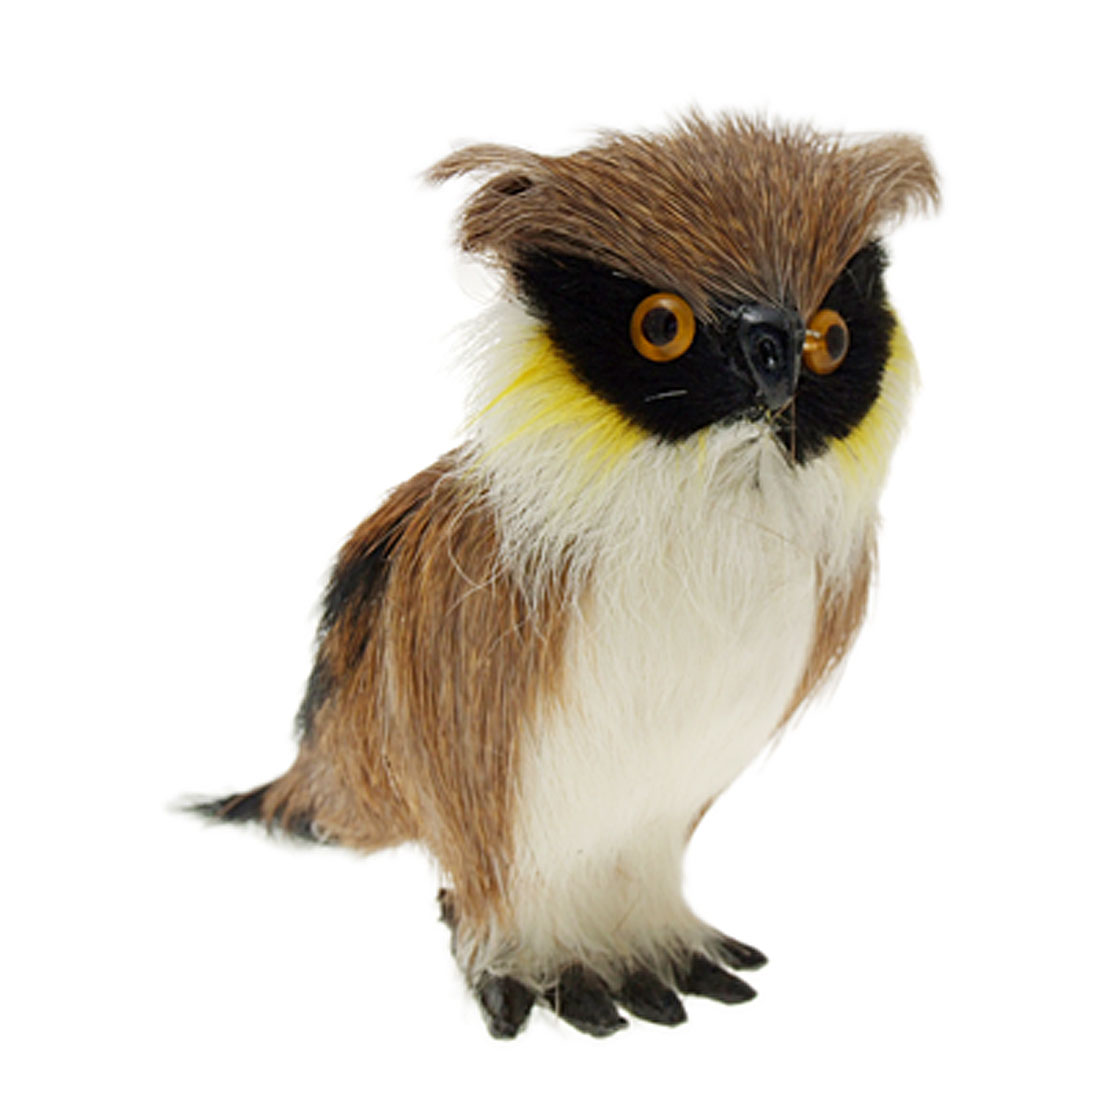 Furry Owl Animal Office Ornament Decoration Gift